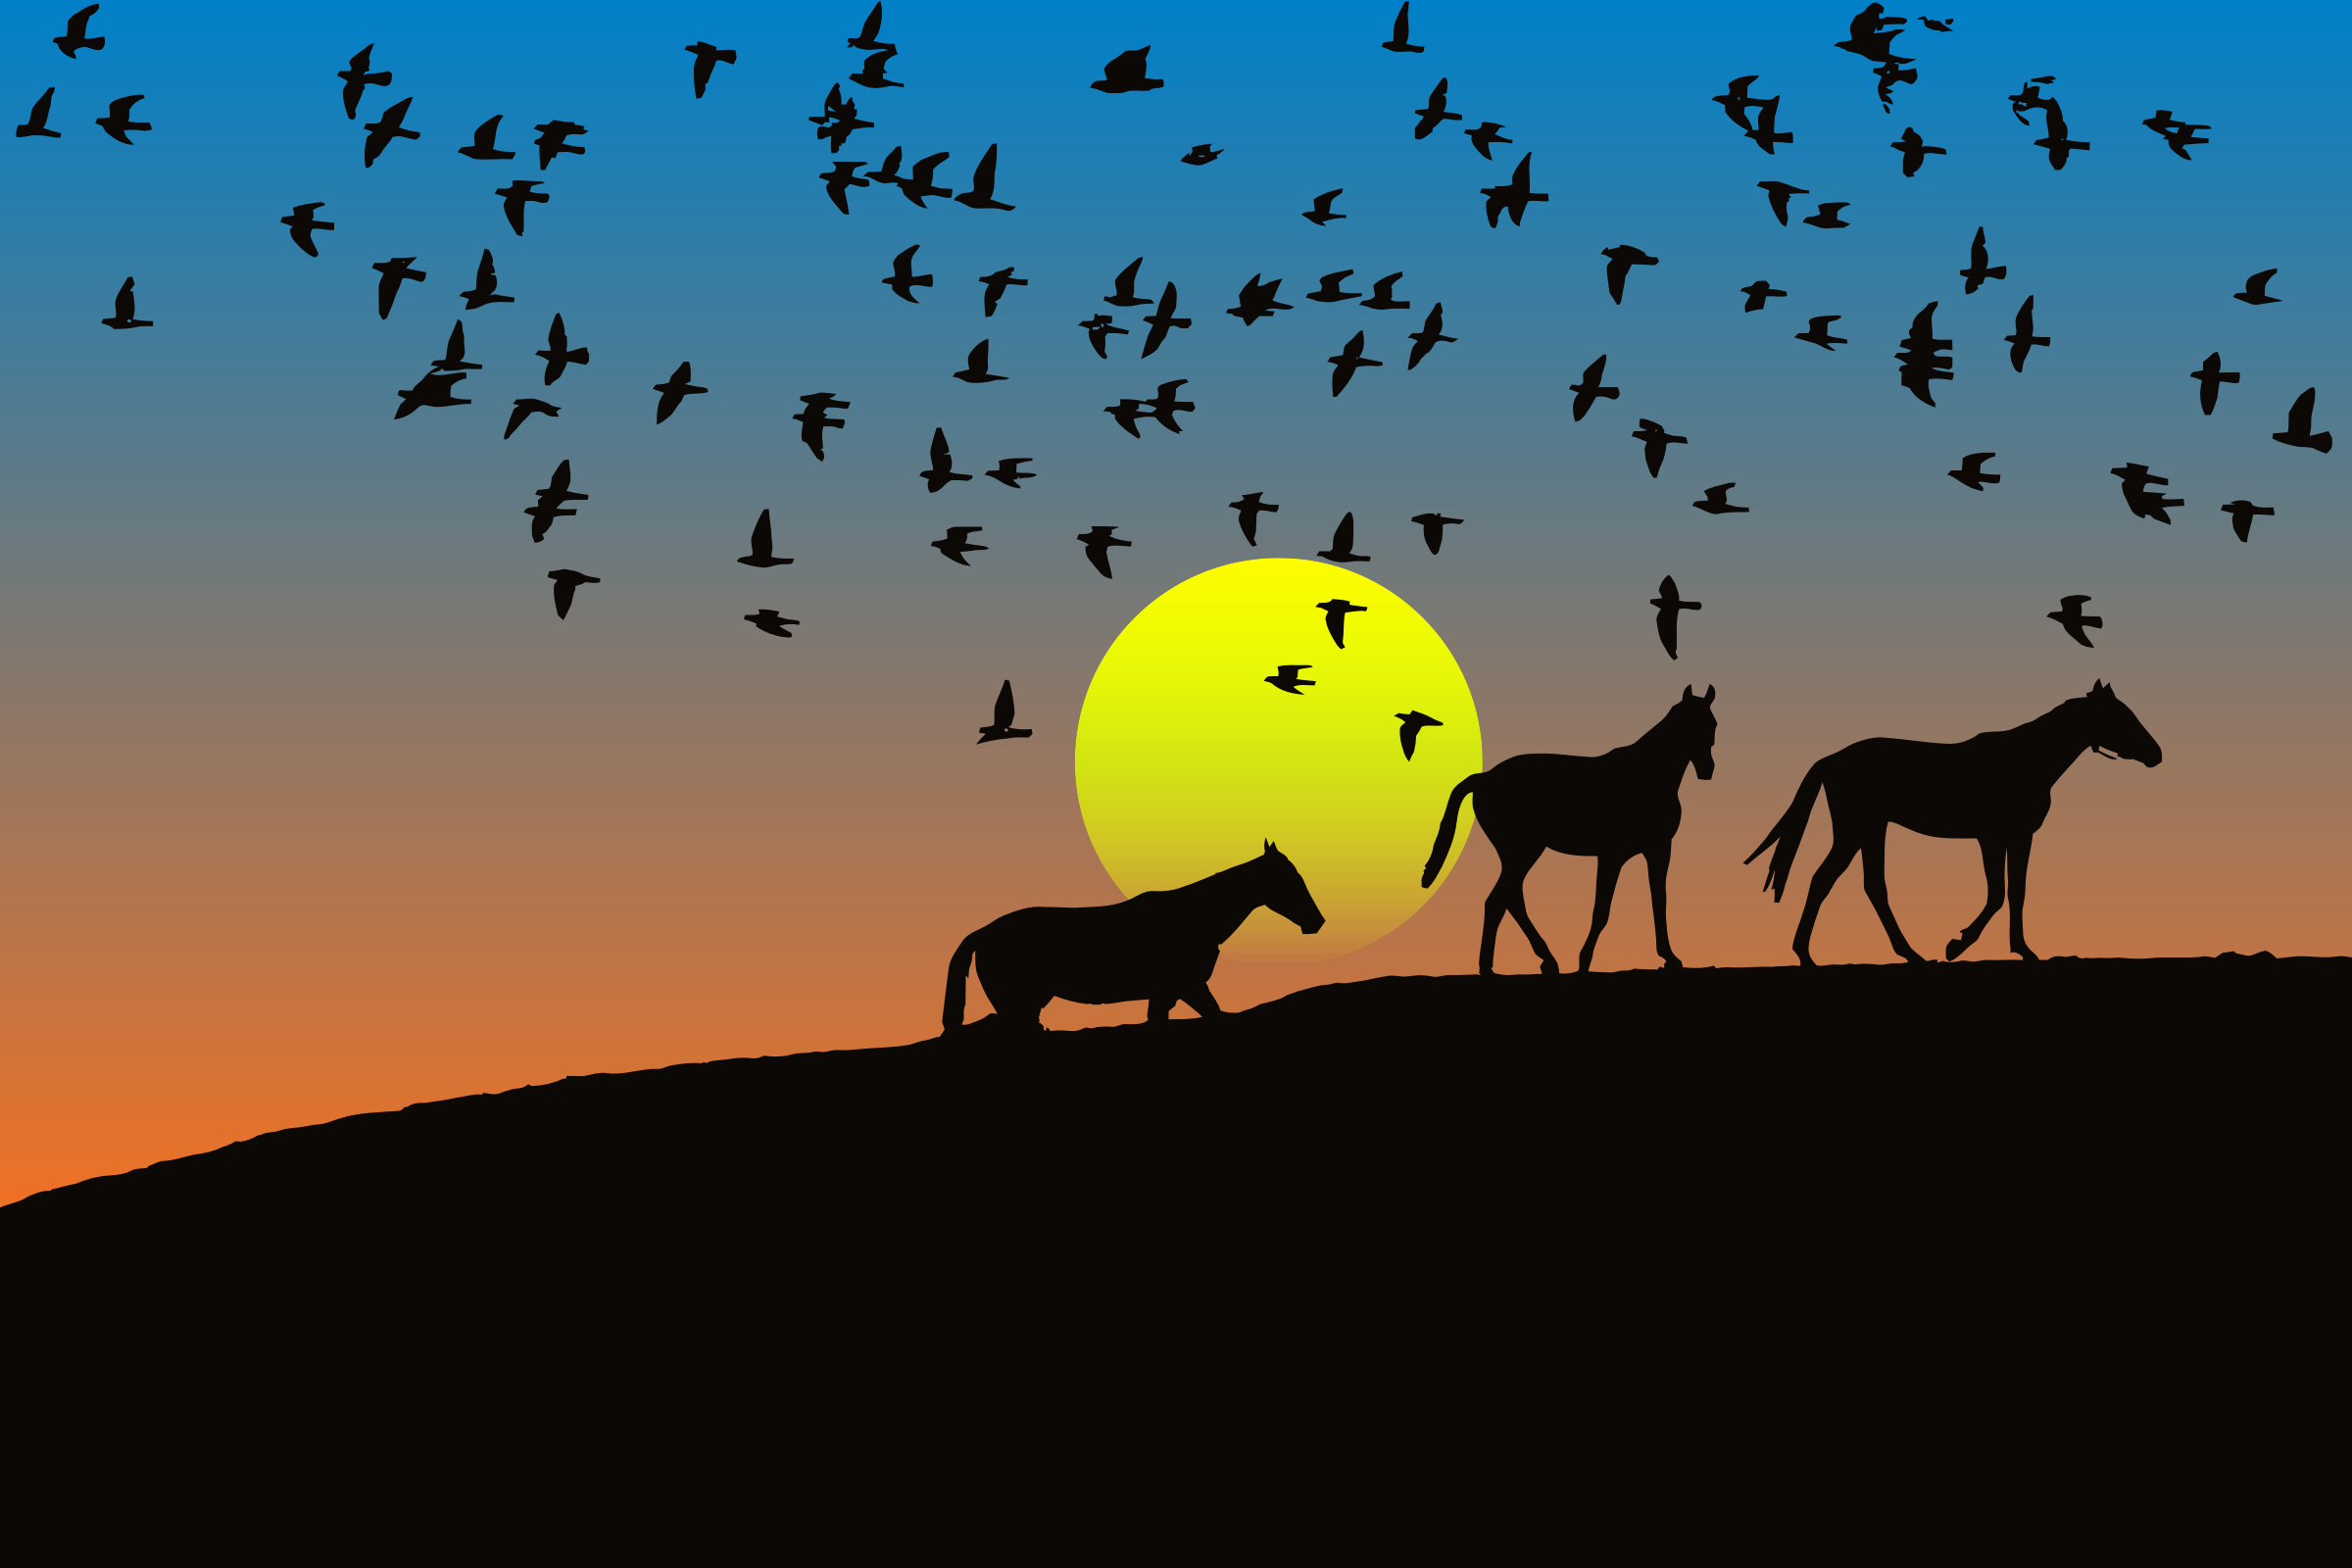 Birds And Horses Silhouette Sunset 4 by GDJ